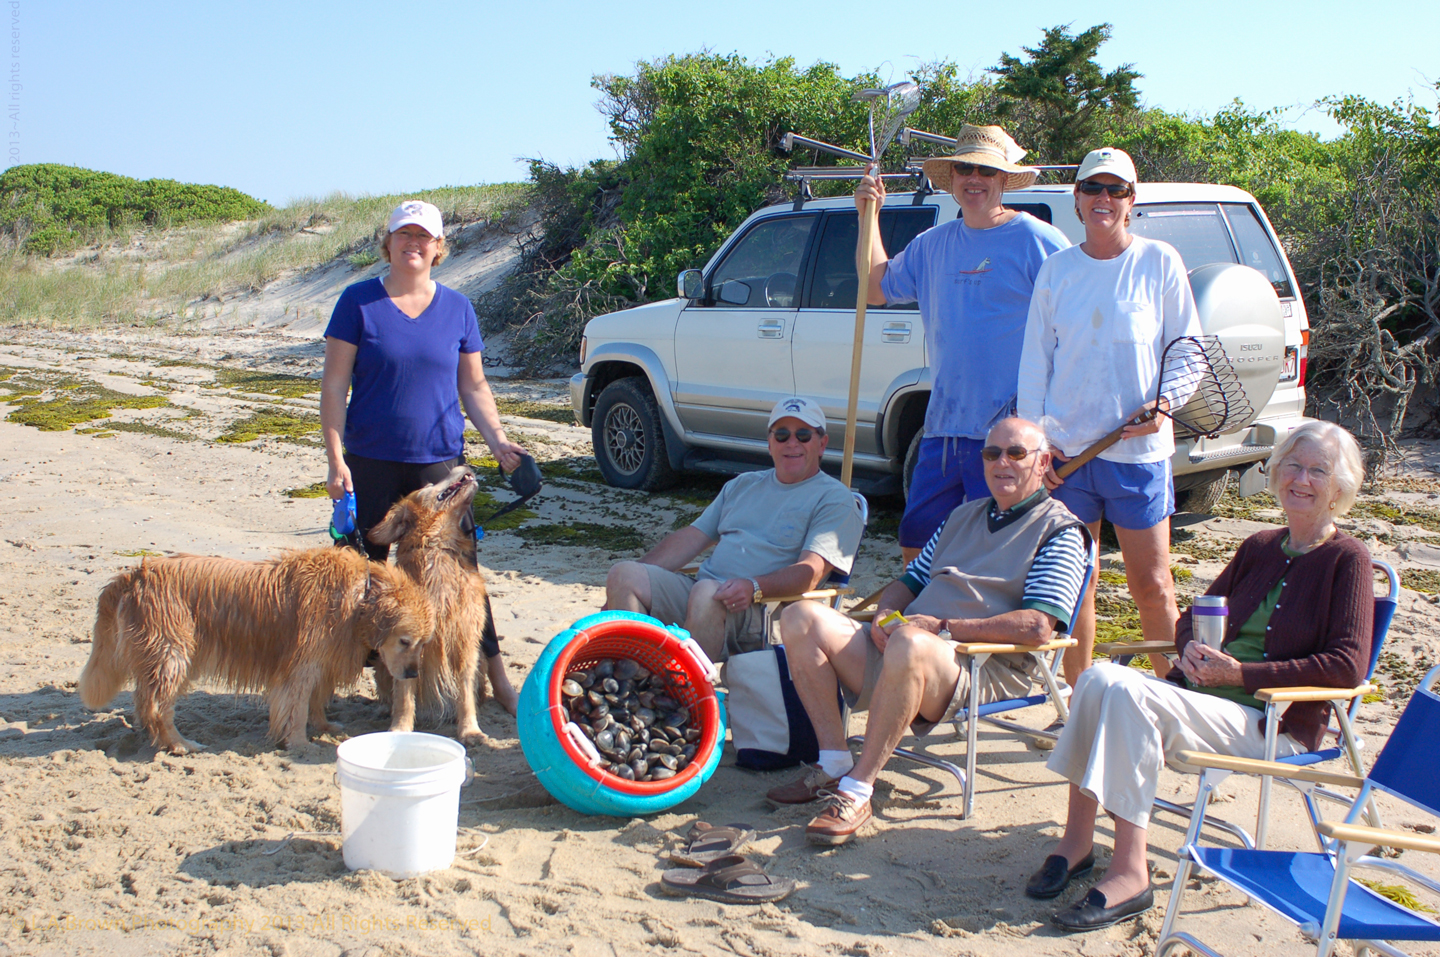 Beach, Clamming, Dog, Lisa Brown